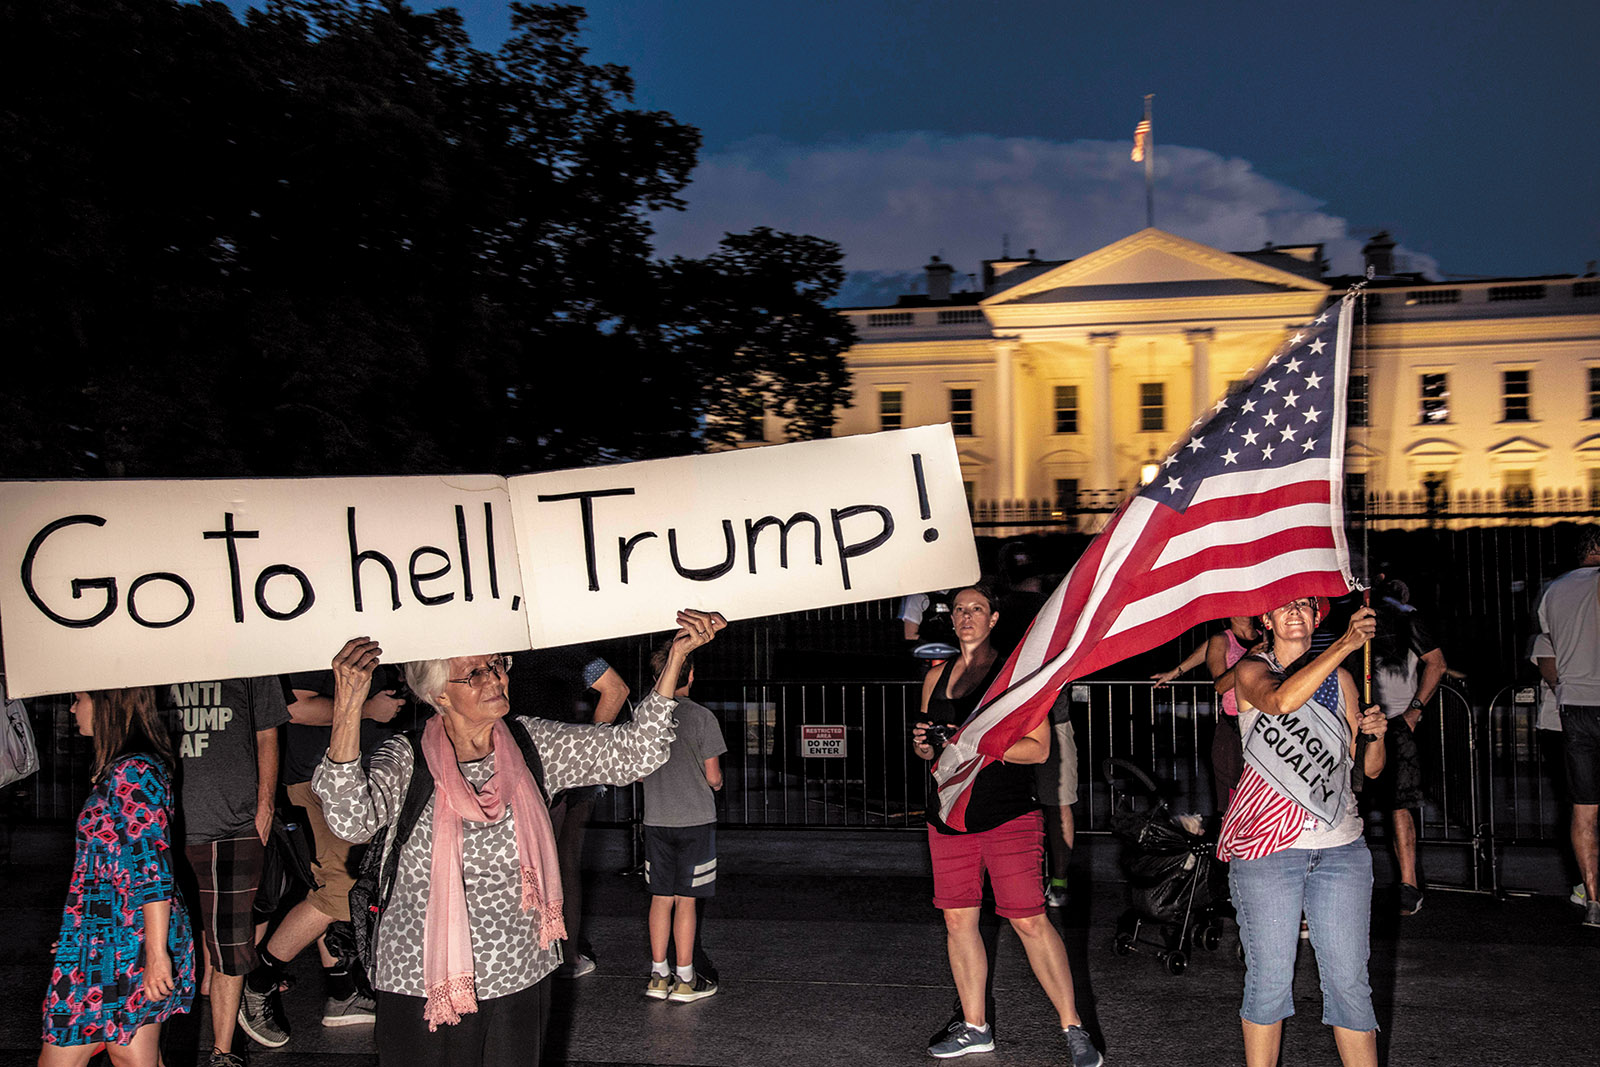 Protesters in front of the White House, August 2018